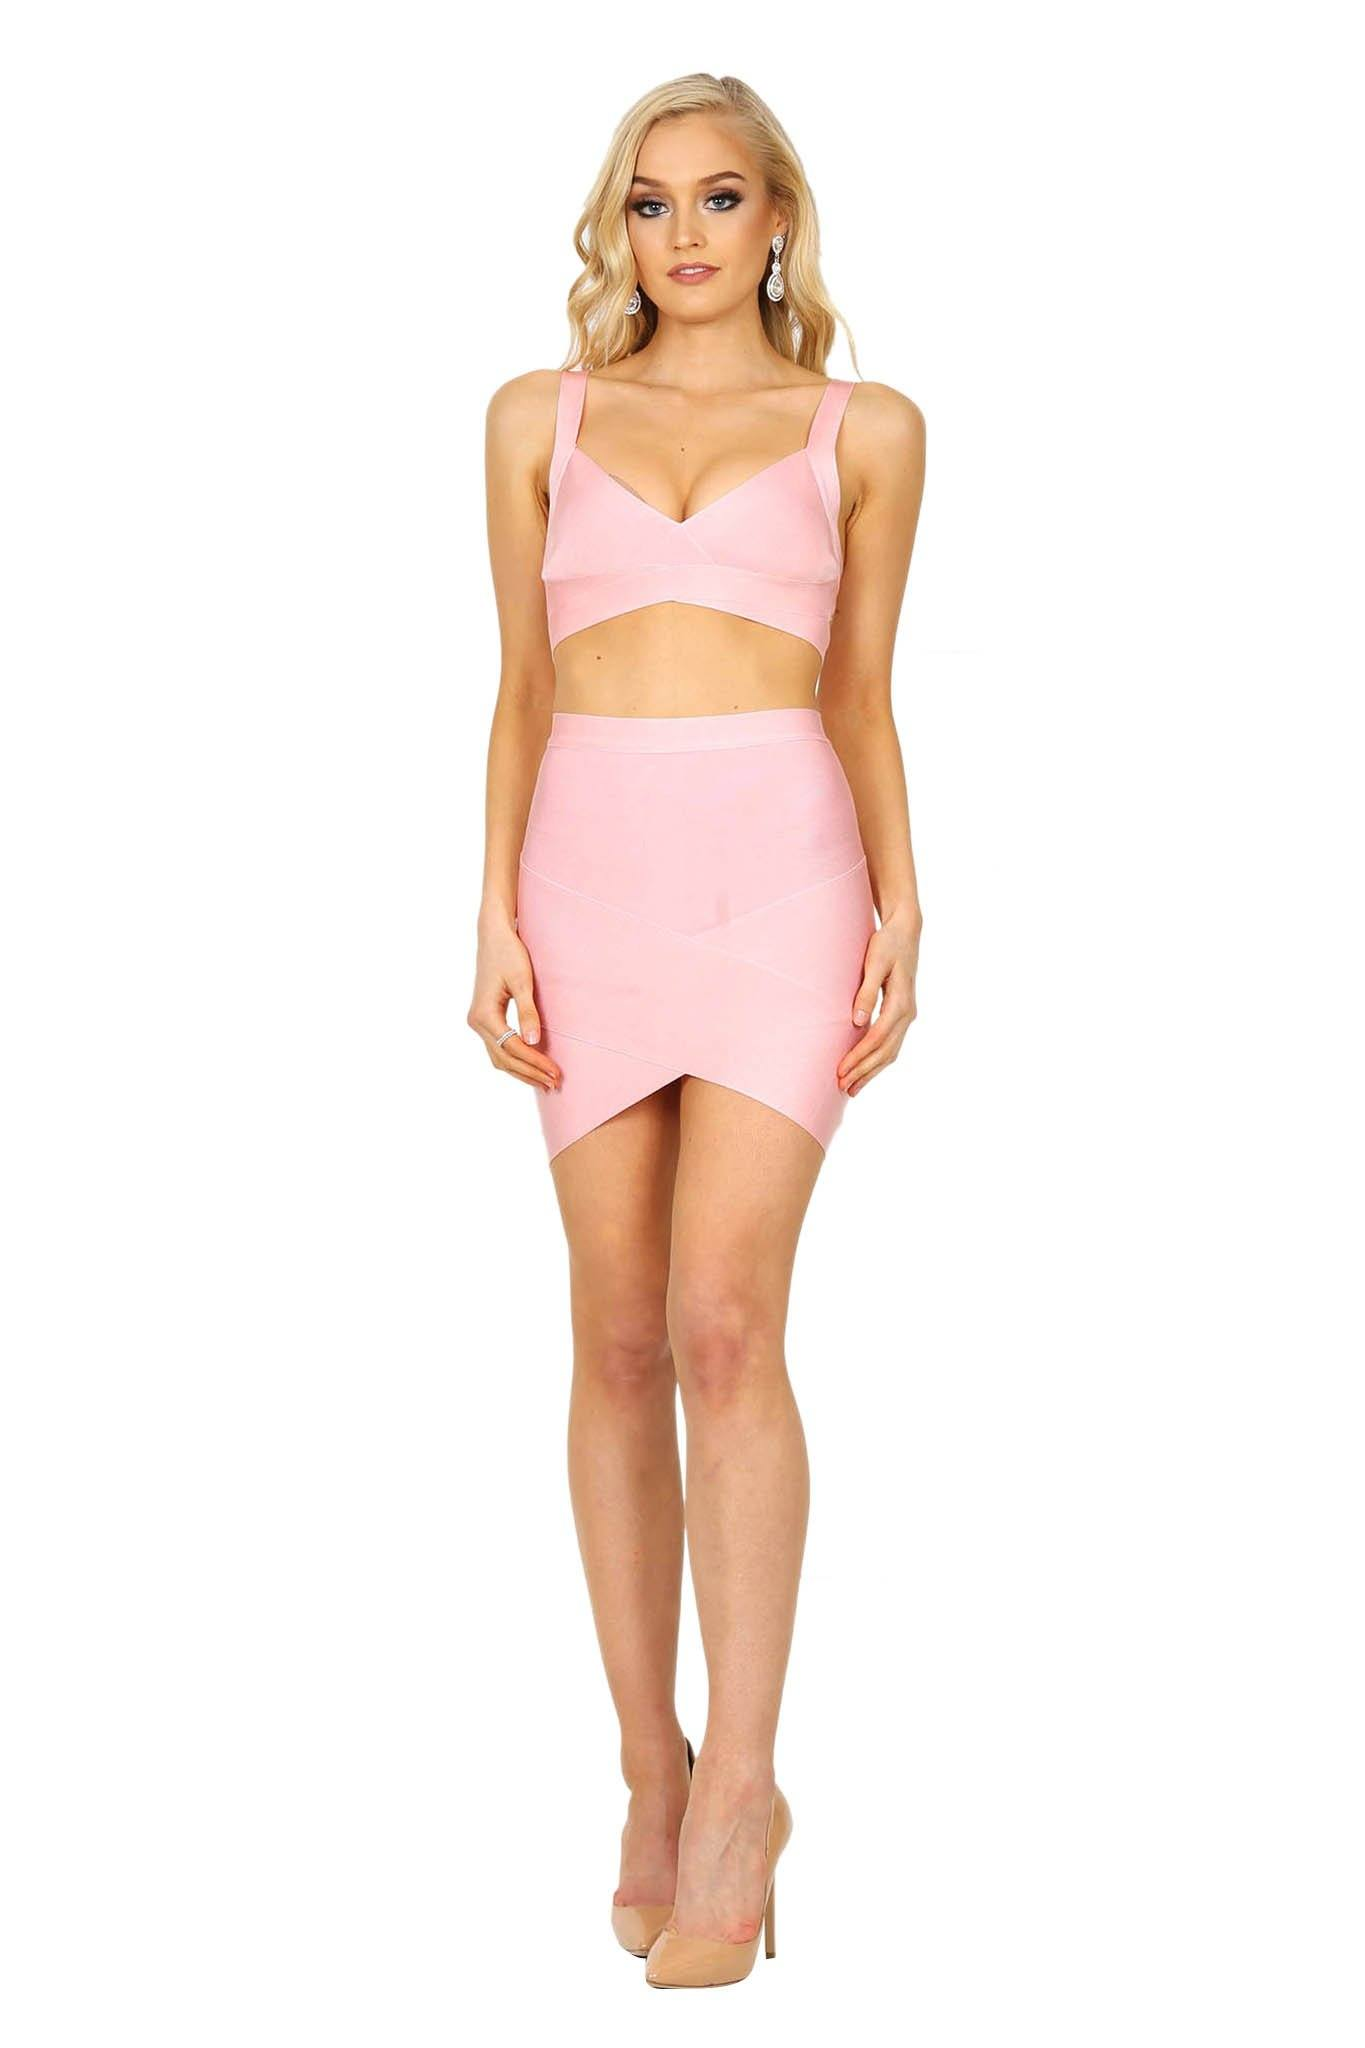 Pink matching fitted bandage set including bralette style top and arched hem mini skirt